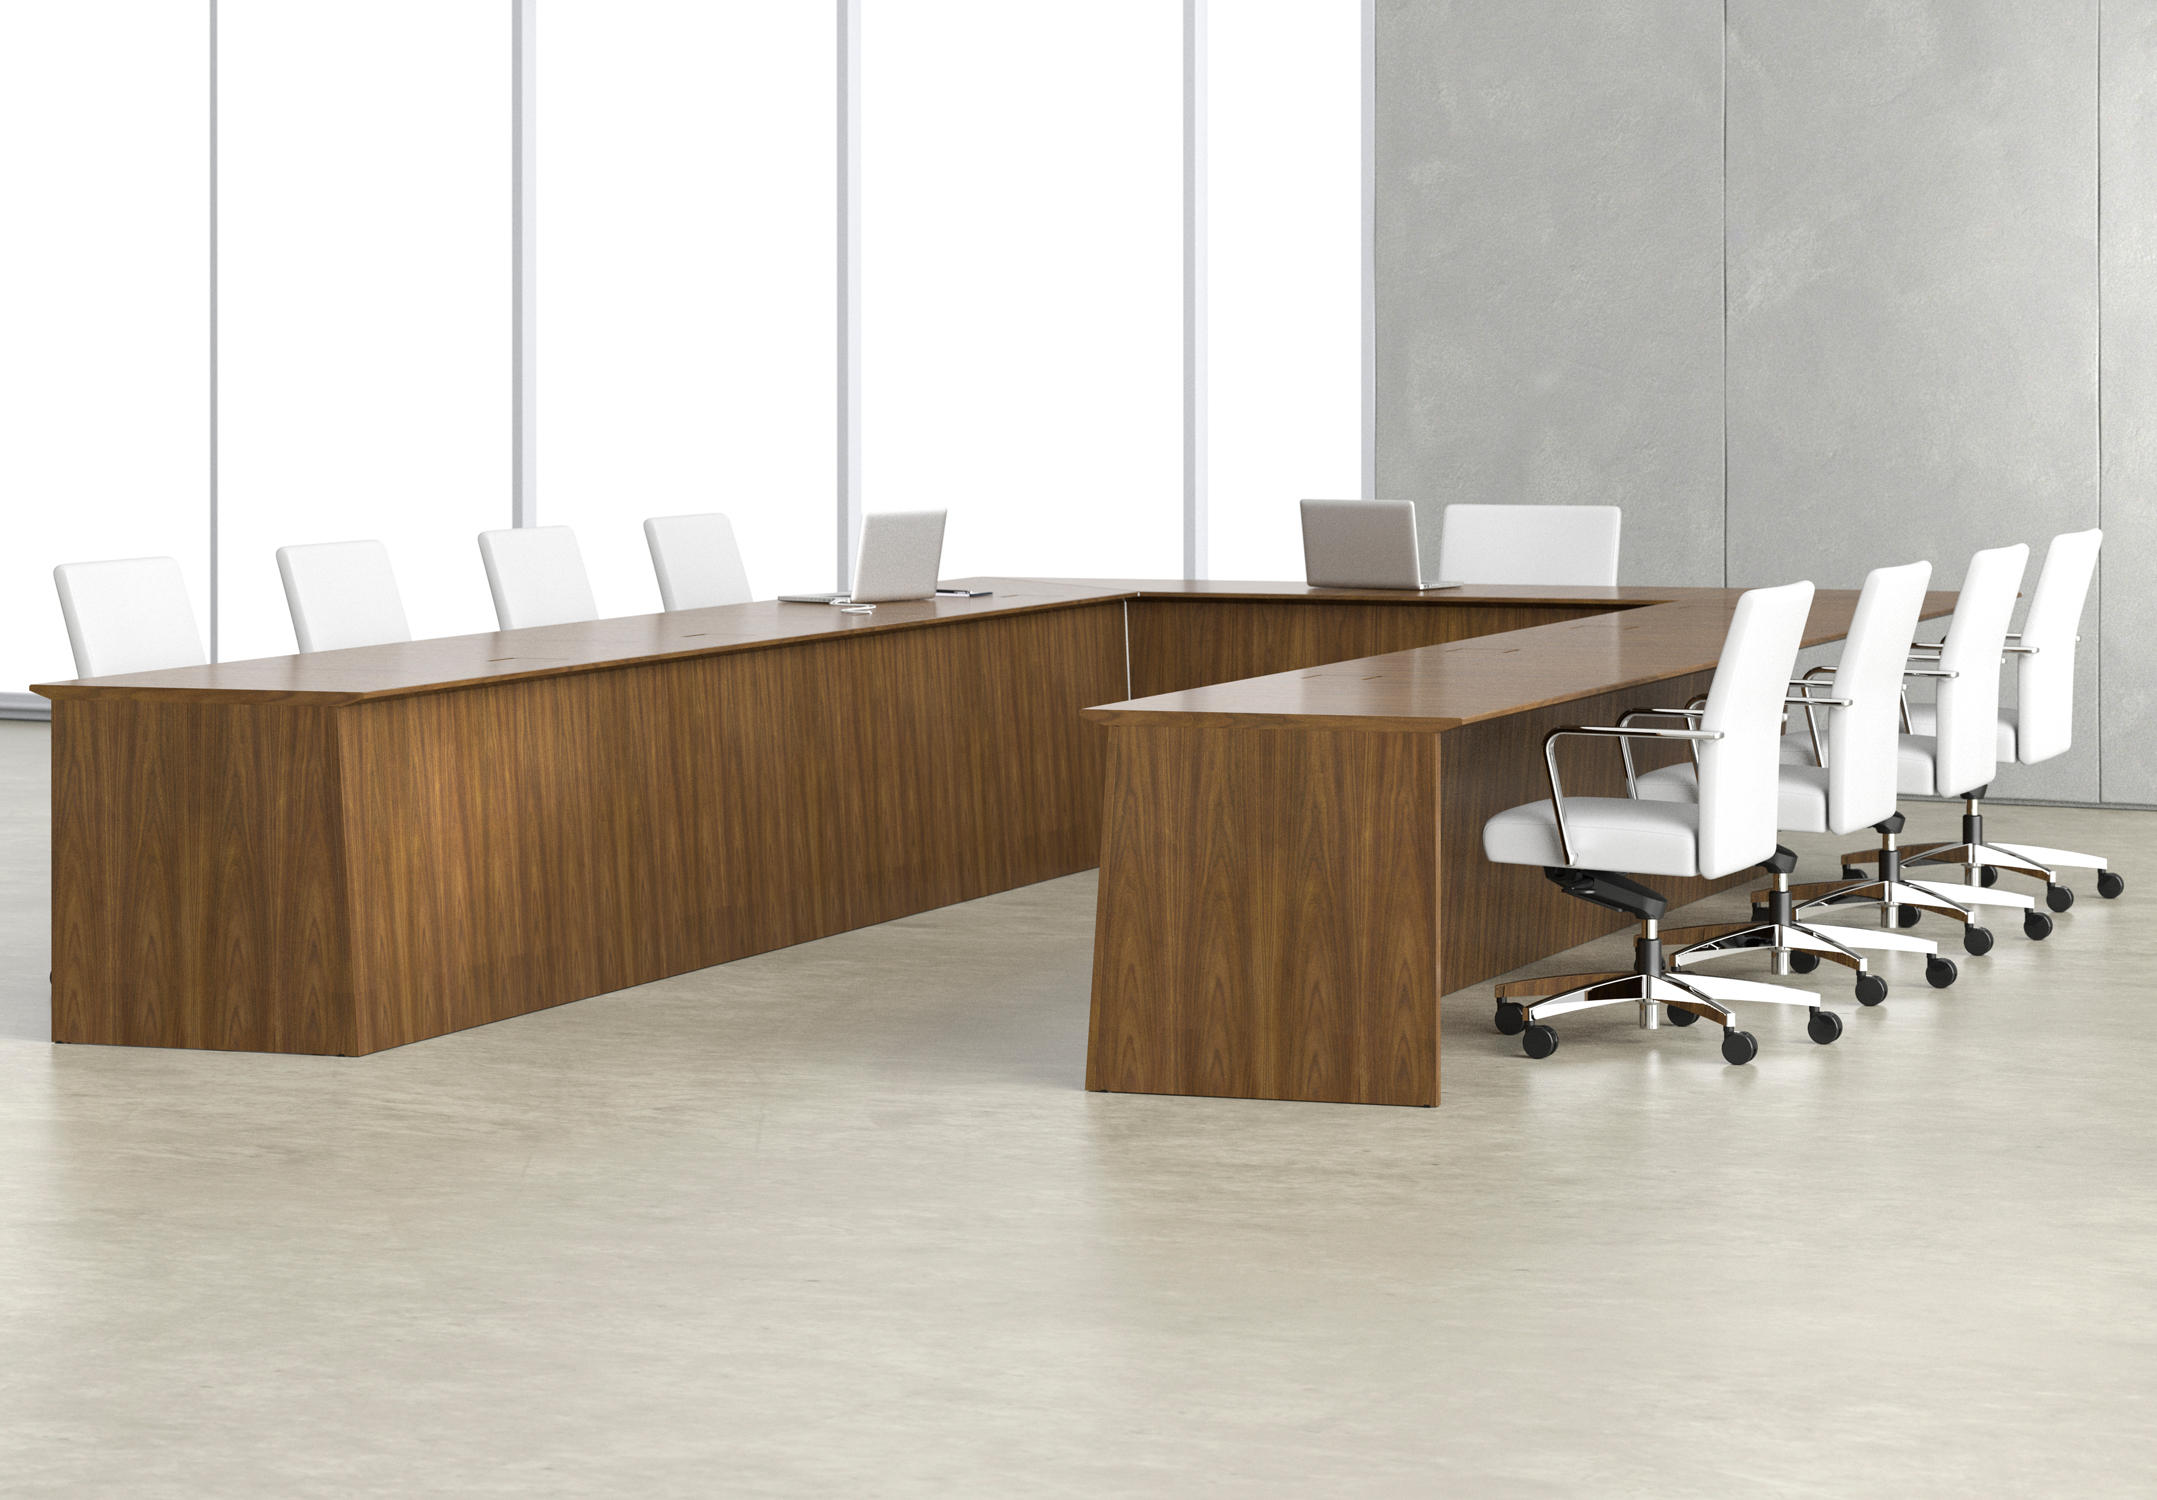 Office conference room design Trendy Strongproject Conference Table Modern Office Furniture Strongproject Impress Board Members With These Five Modern Conference Room Designs